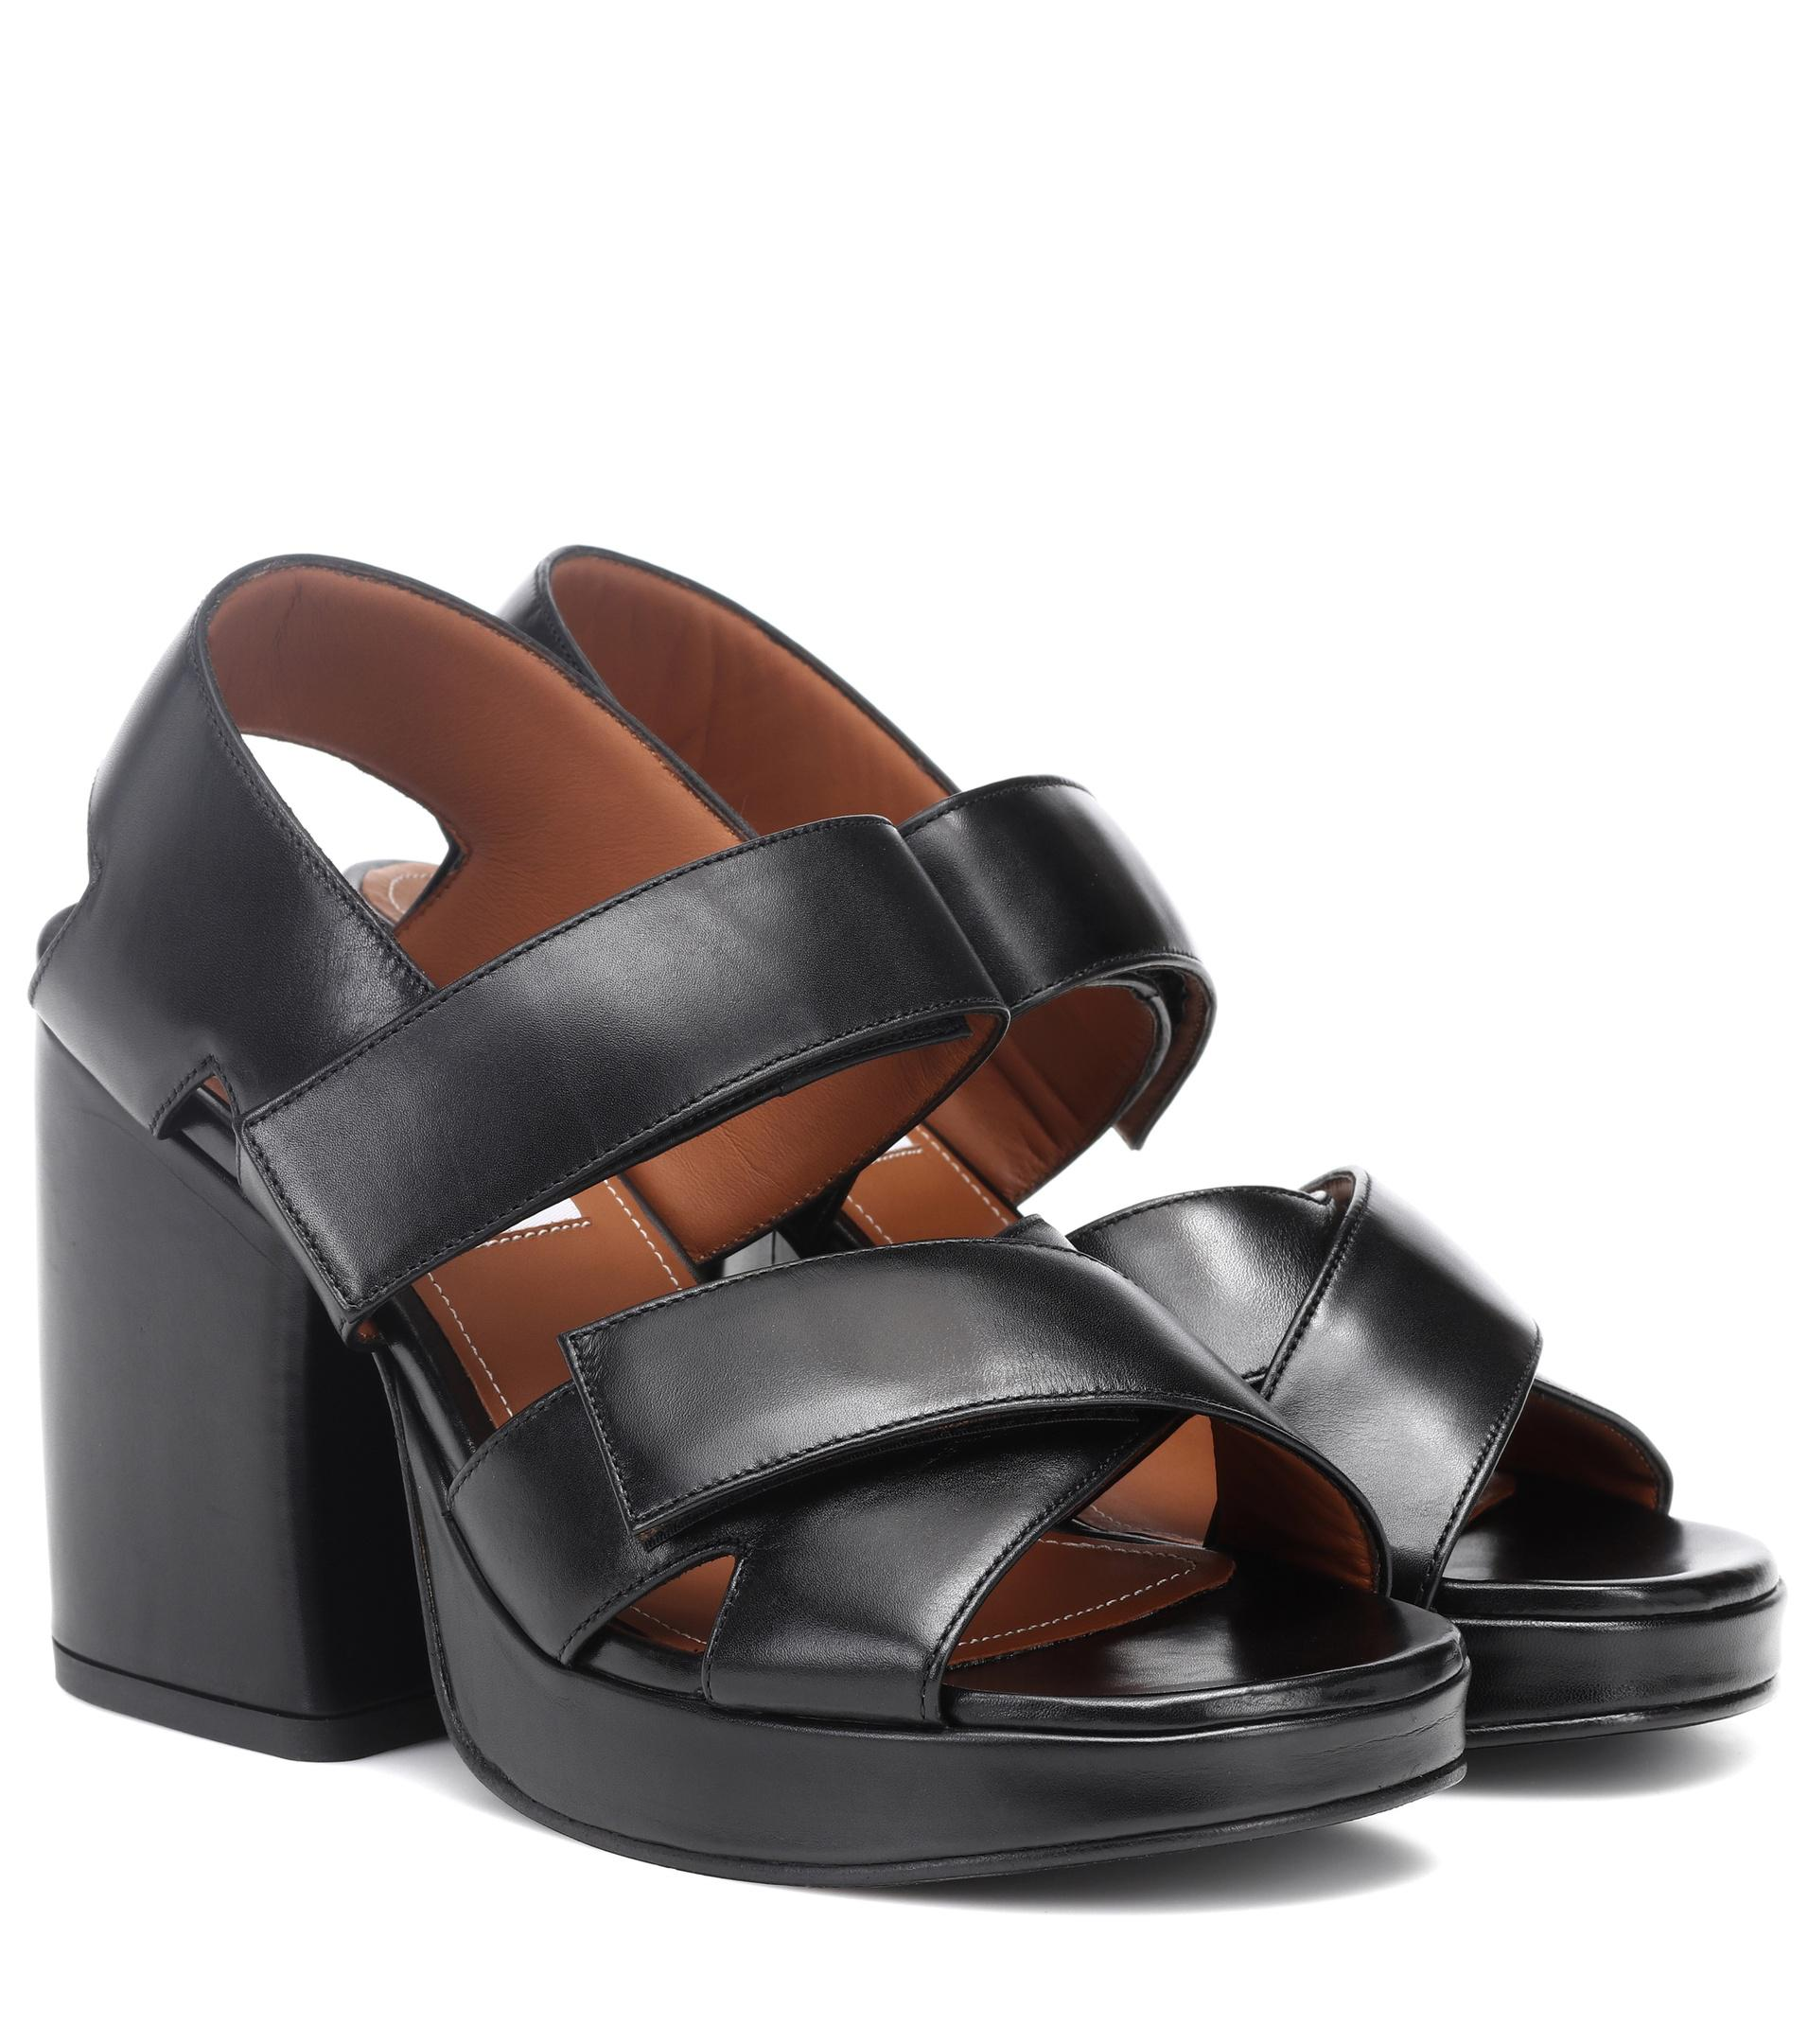 Kenzo Aori leather sandals HskLrAW